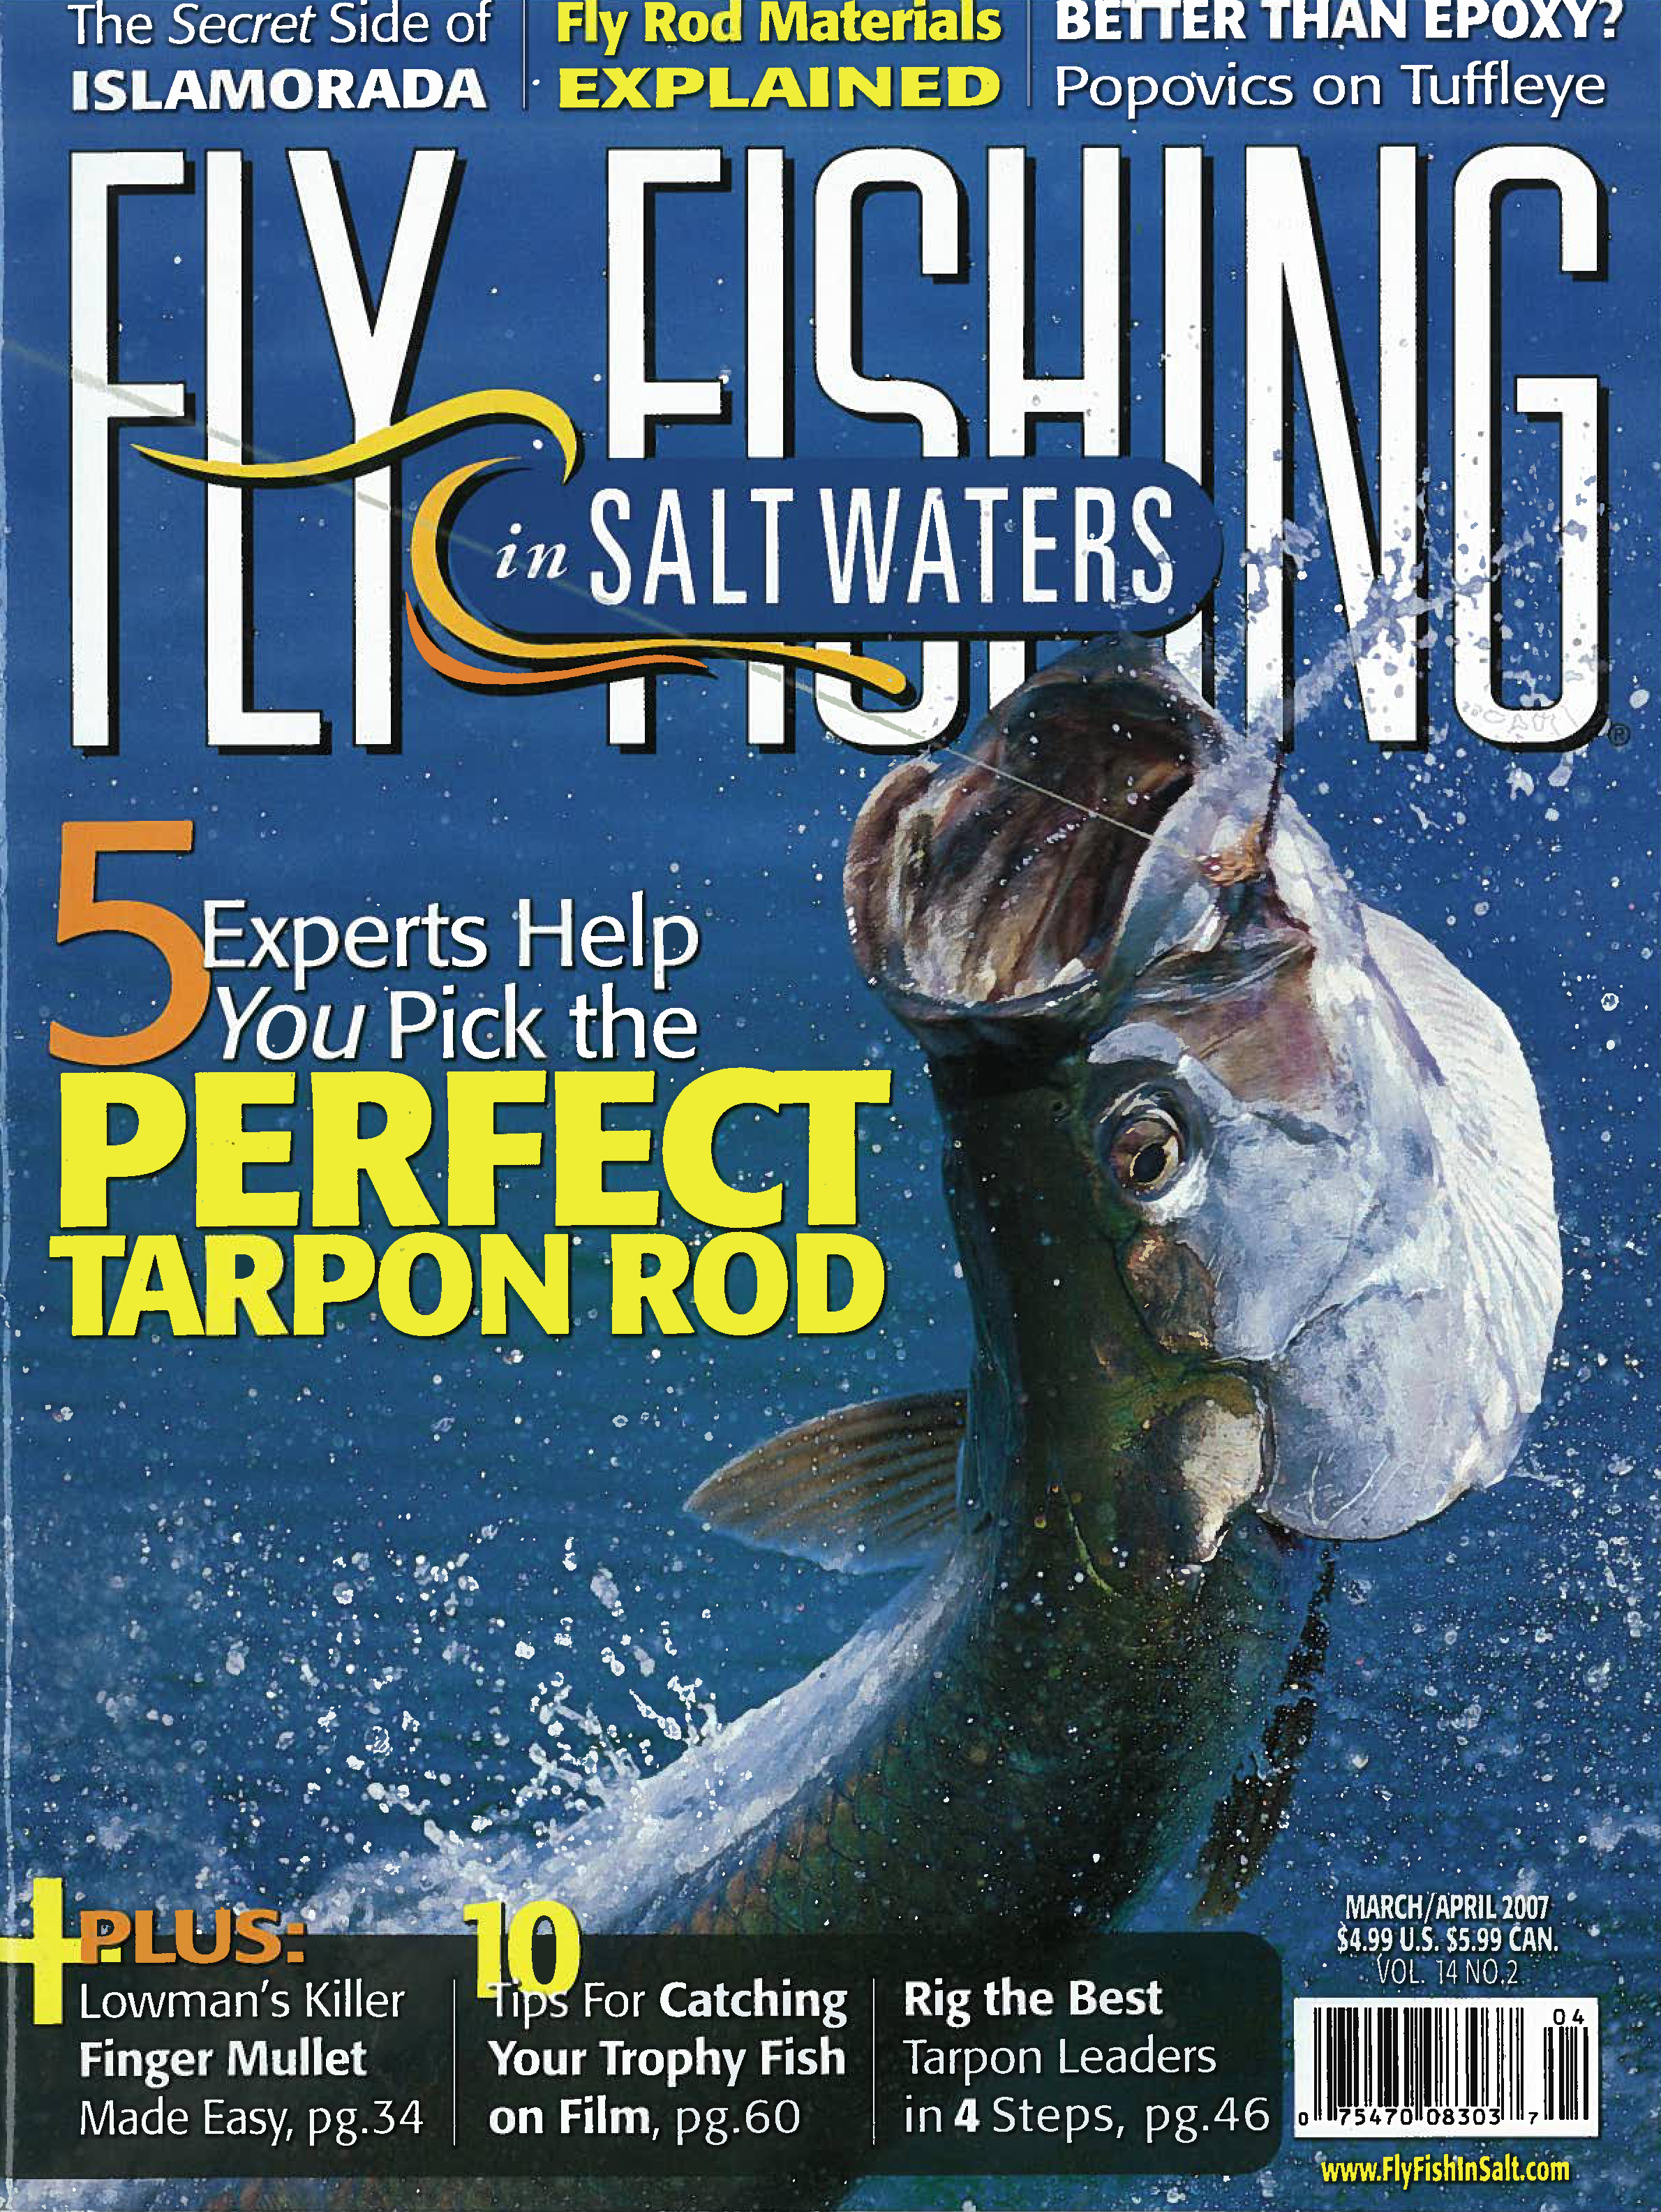 march-april 2007 cover.jpg